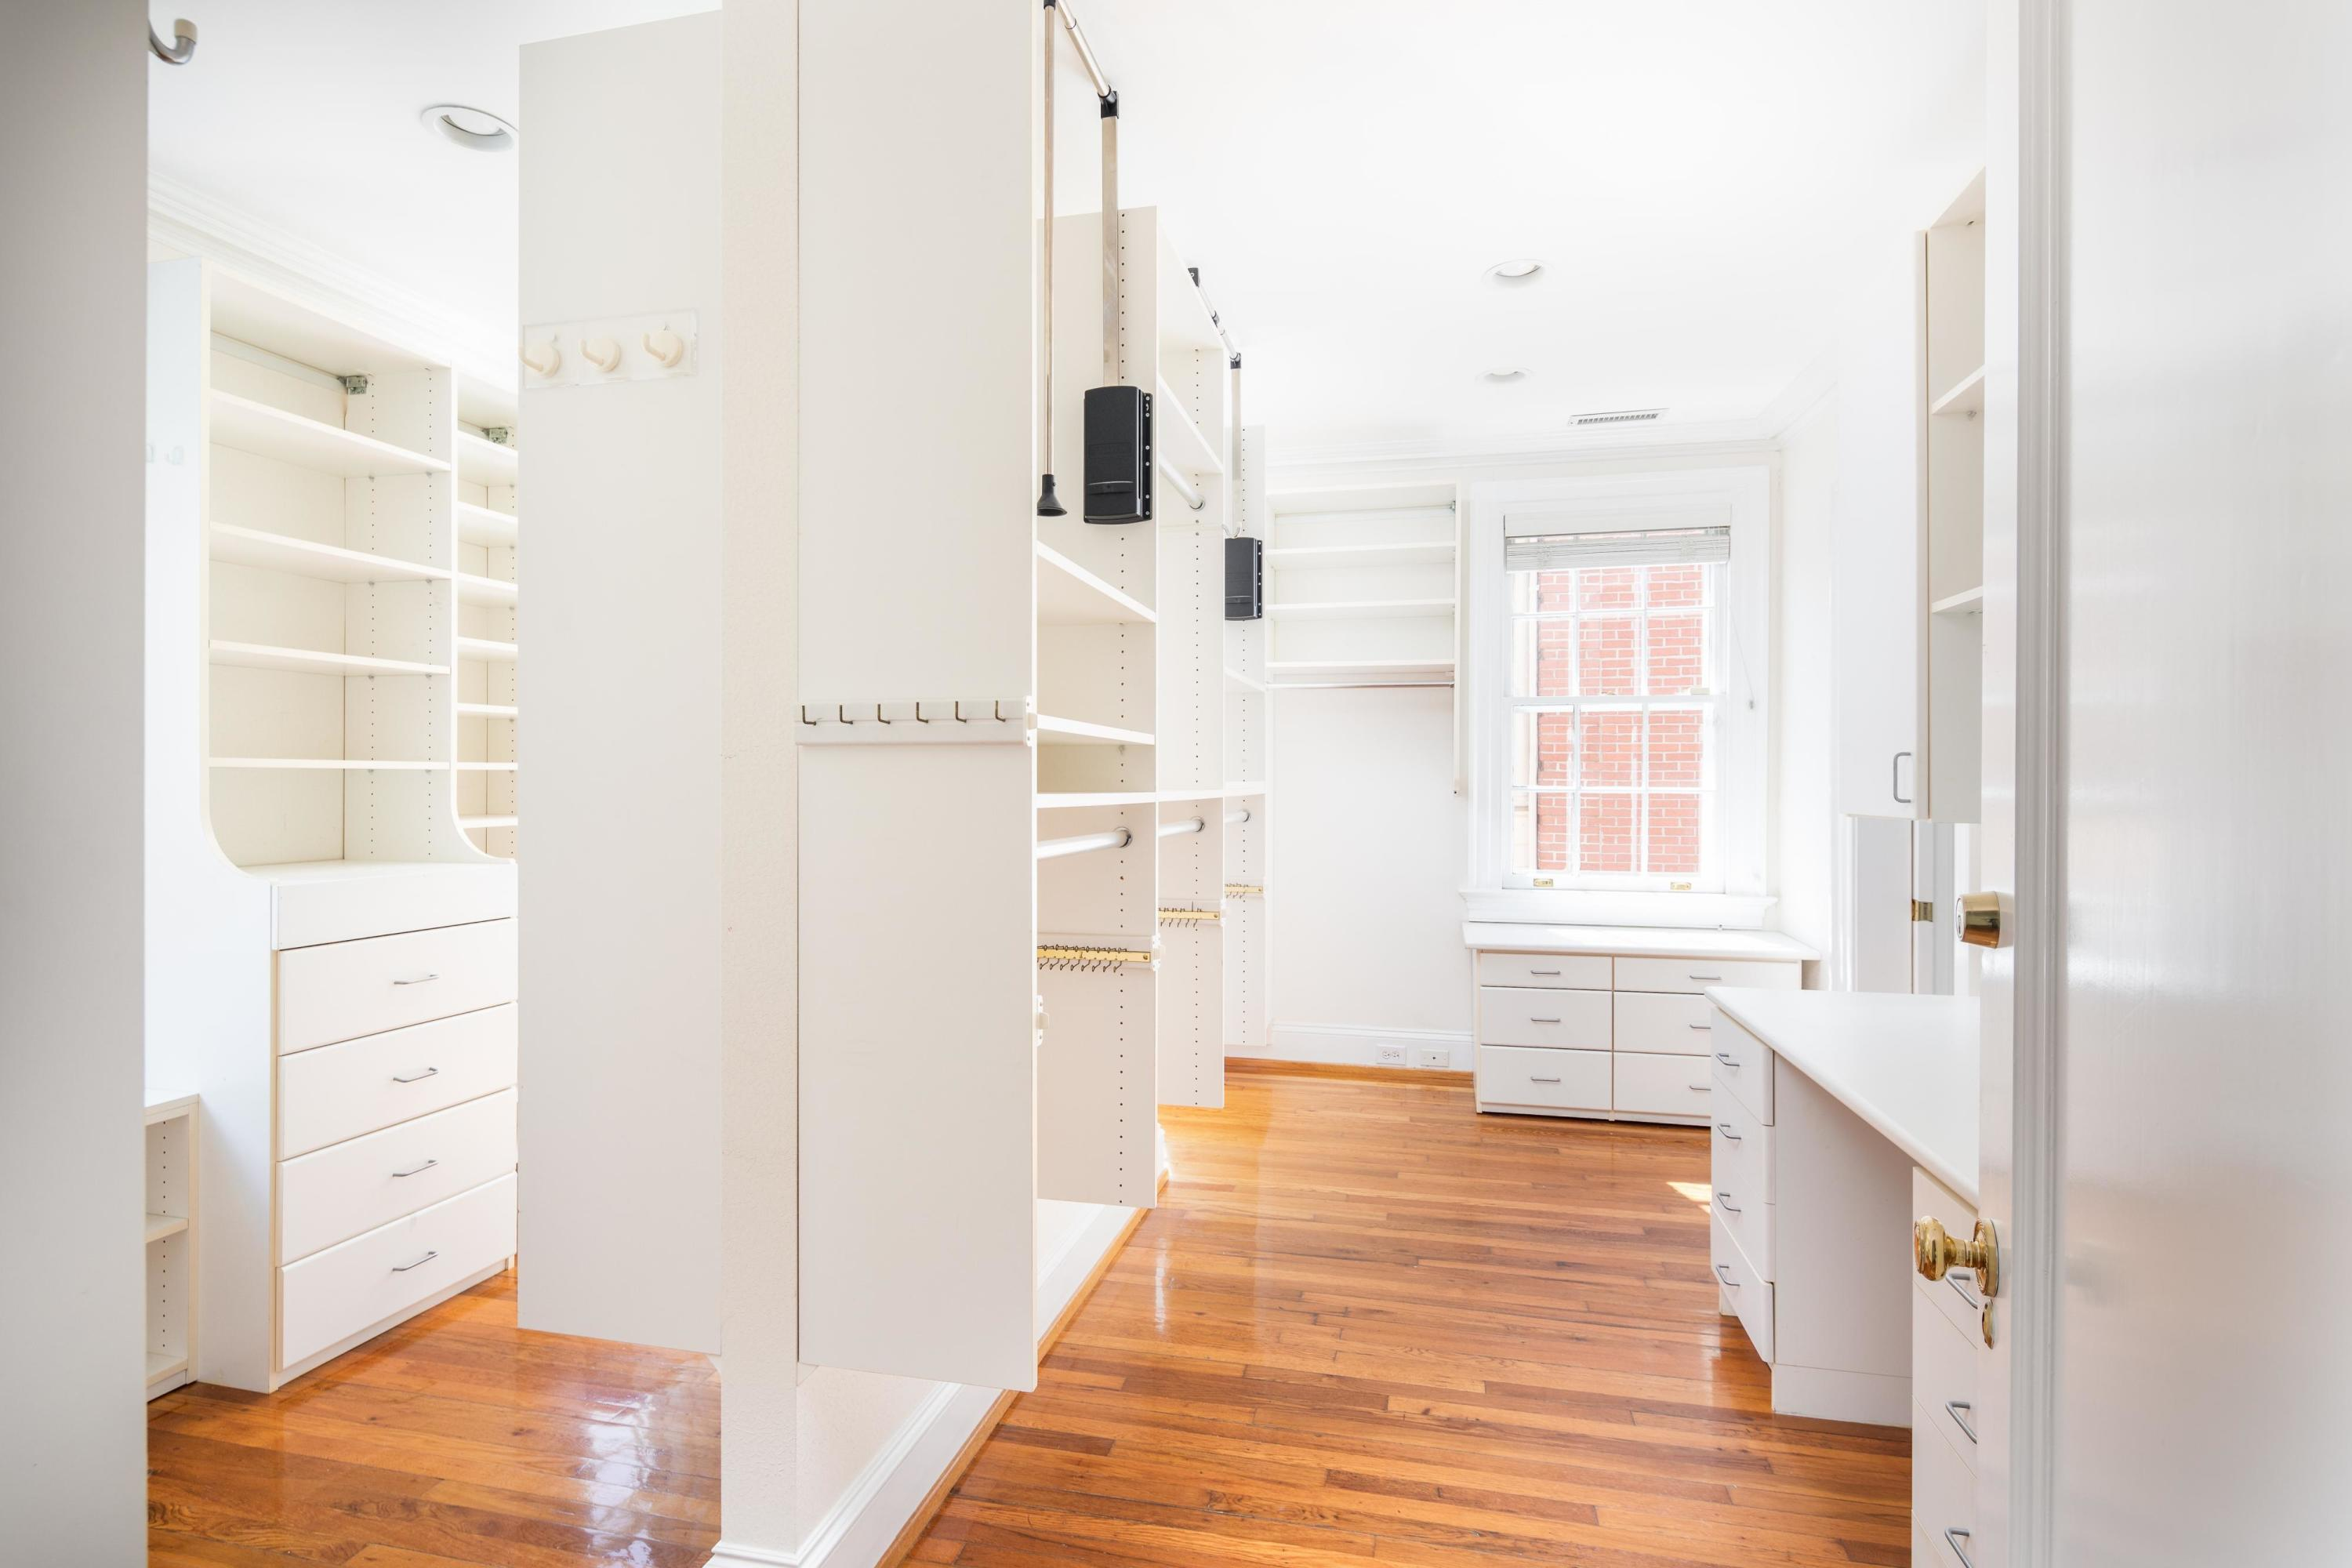 South of Broad Homes For Sale - 104 Murray, Charleston, SC - 7